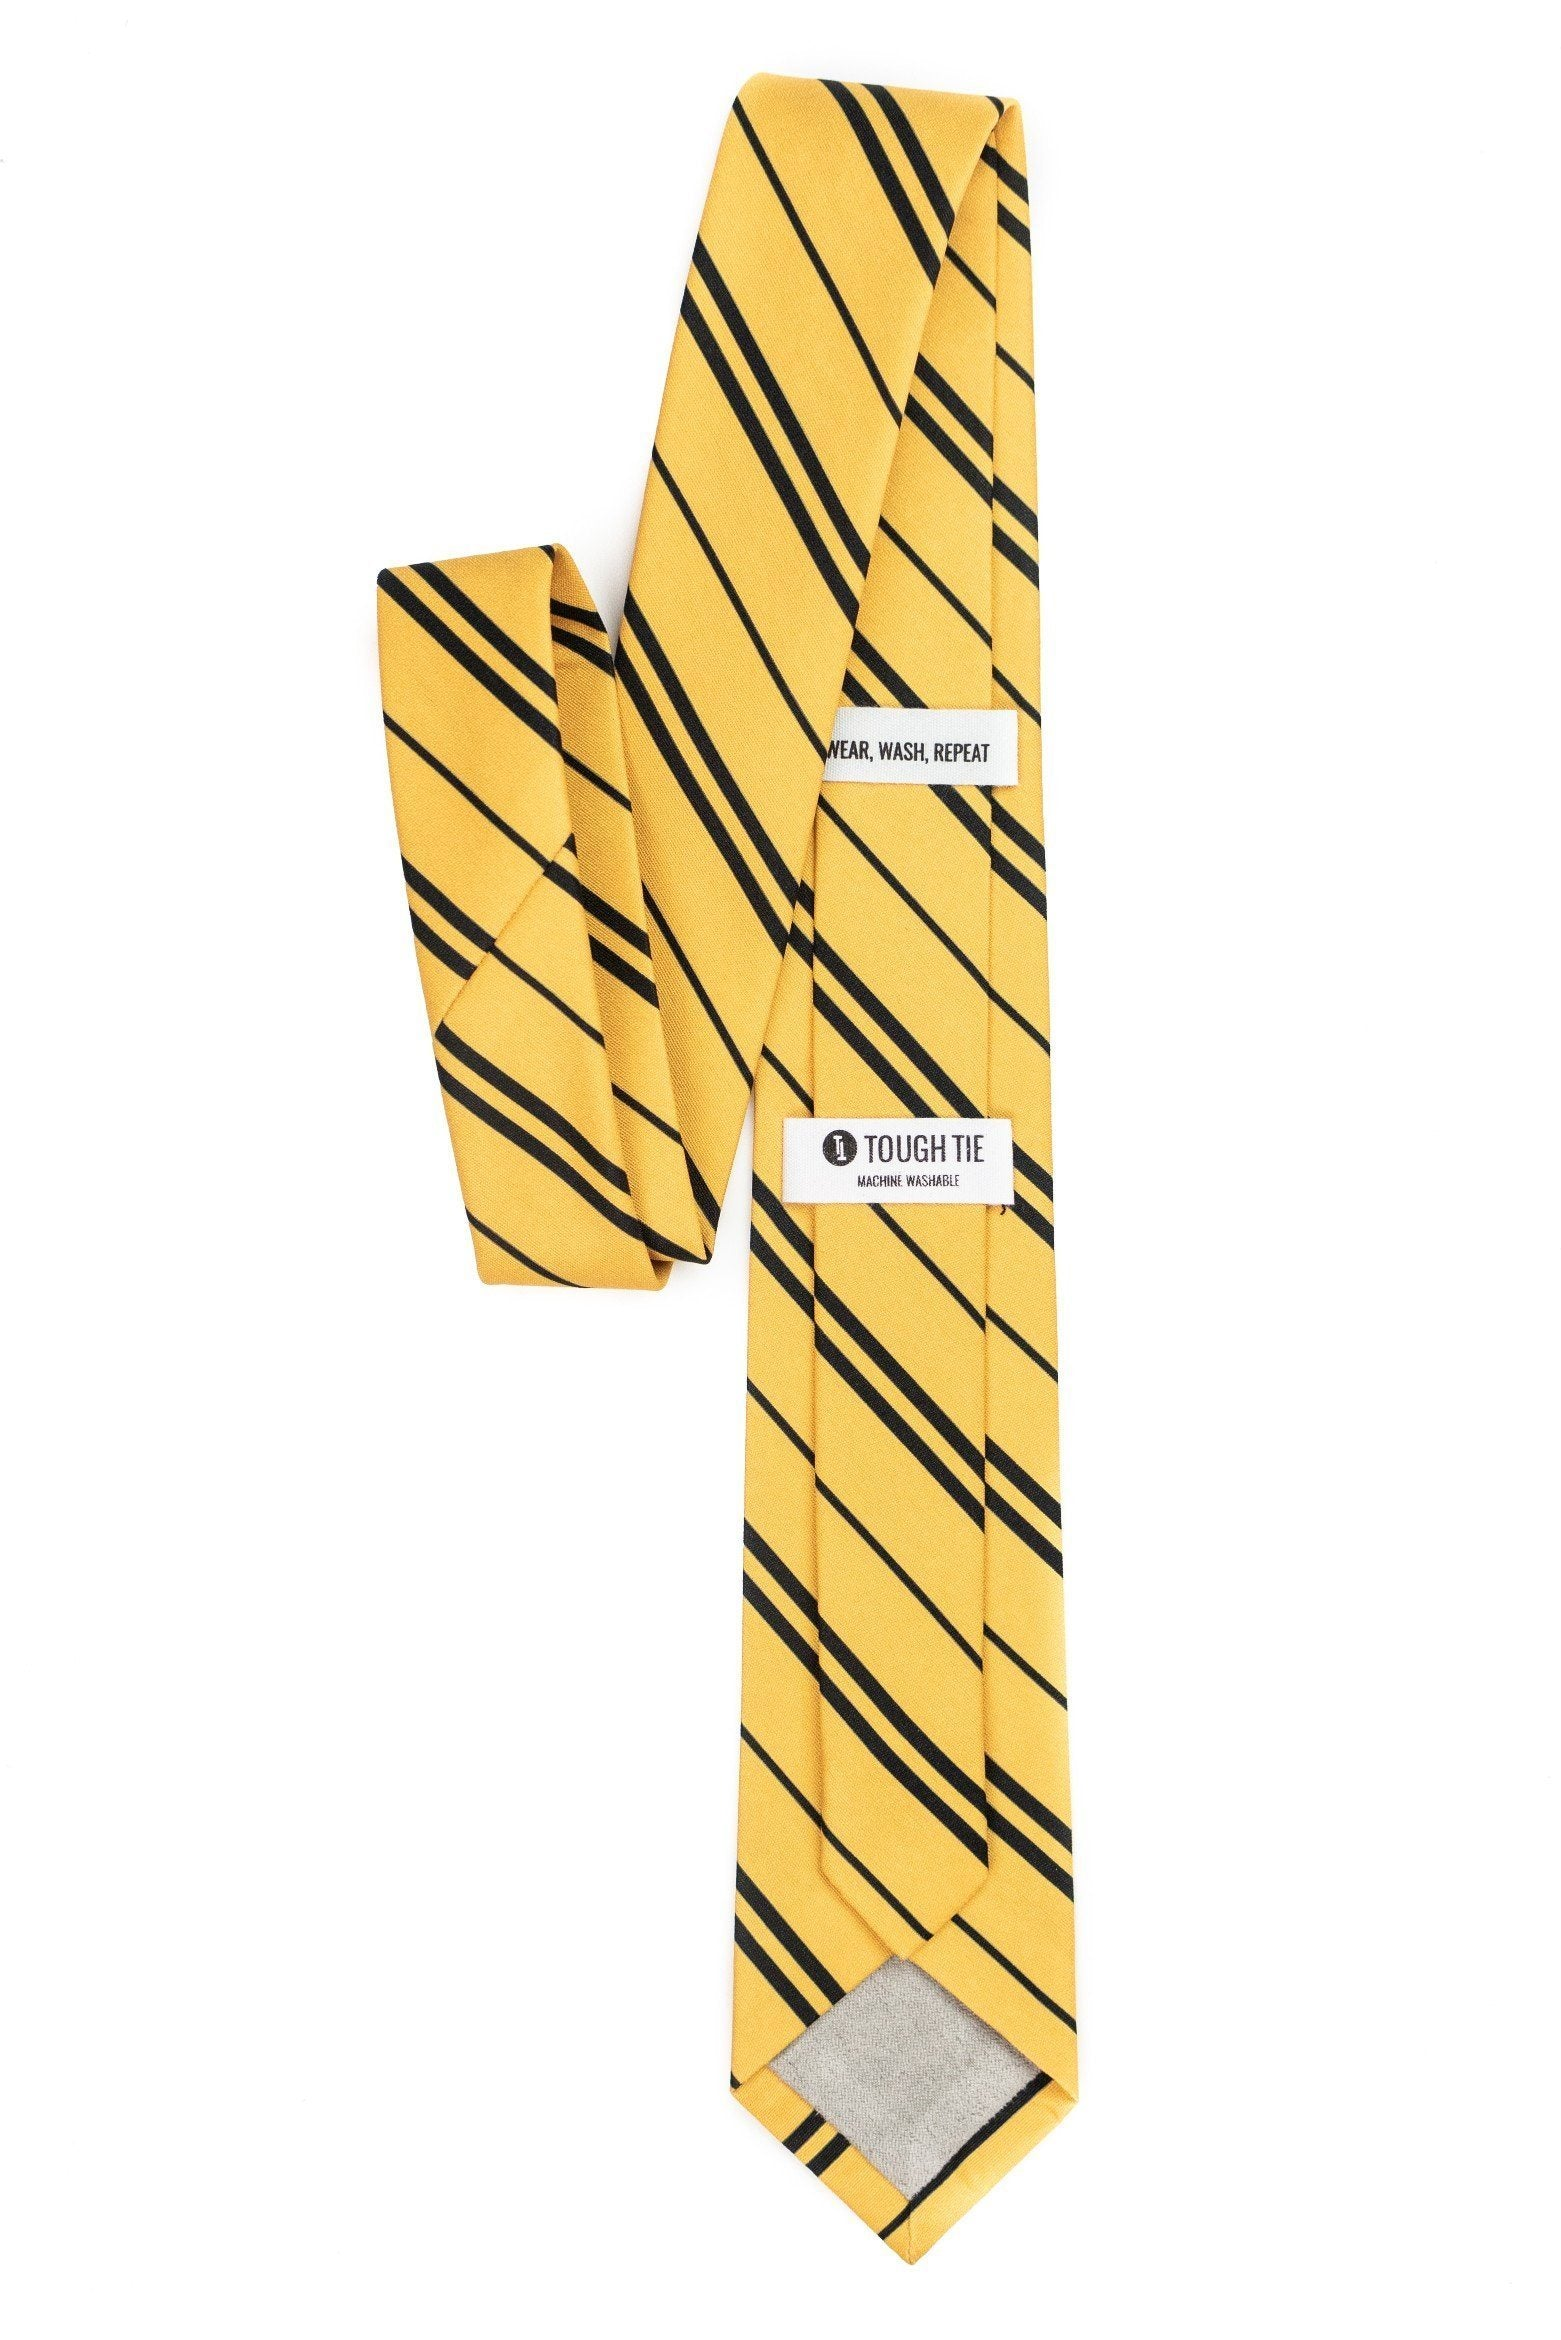 Huffle's Puff - Tough Tie